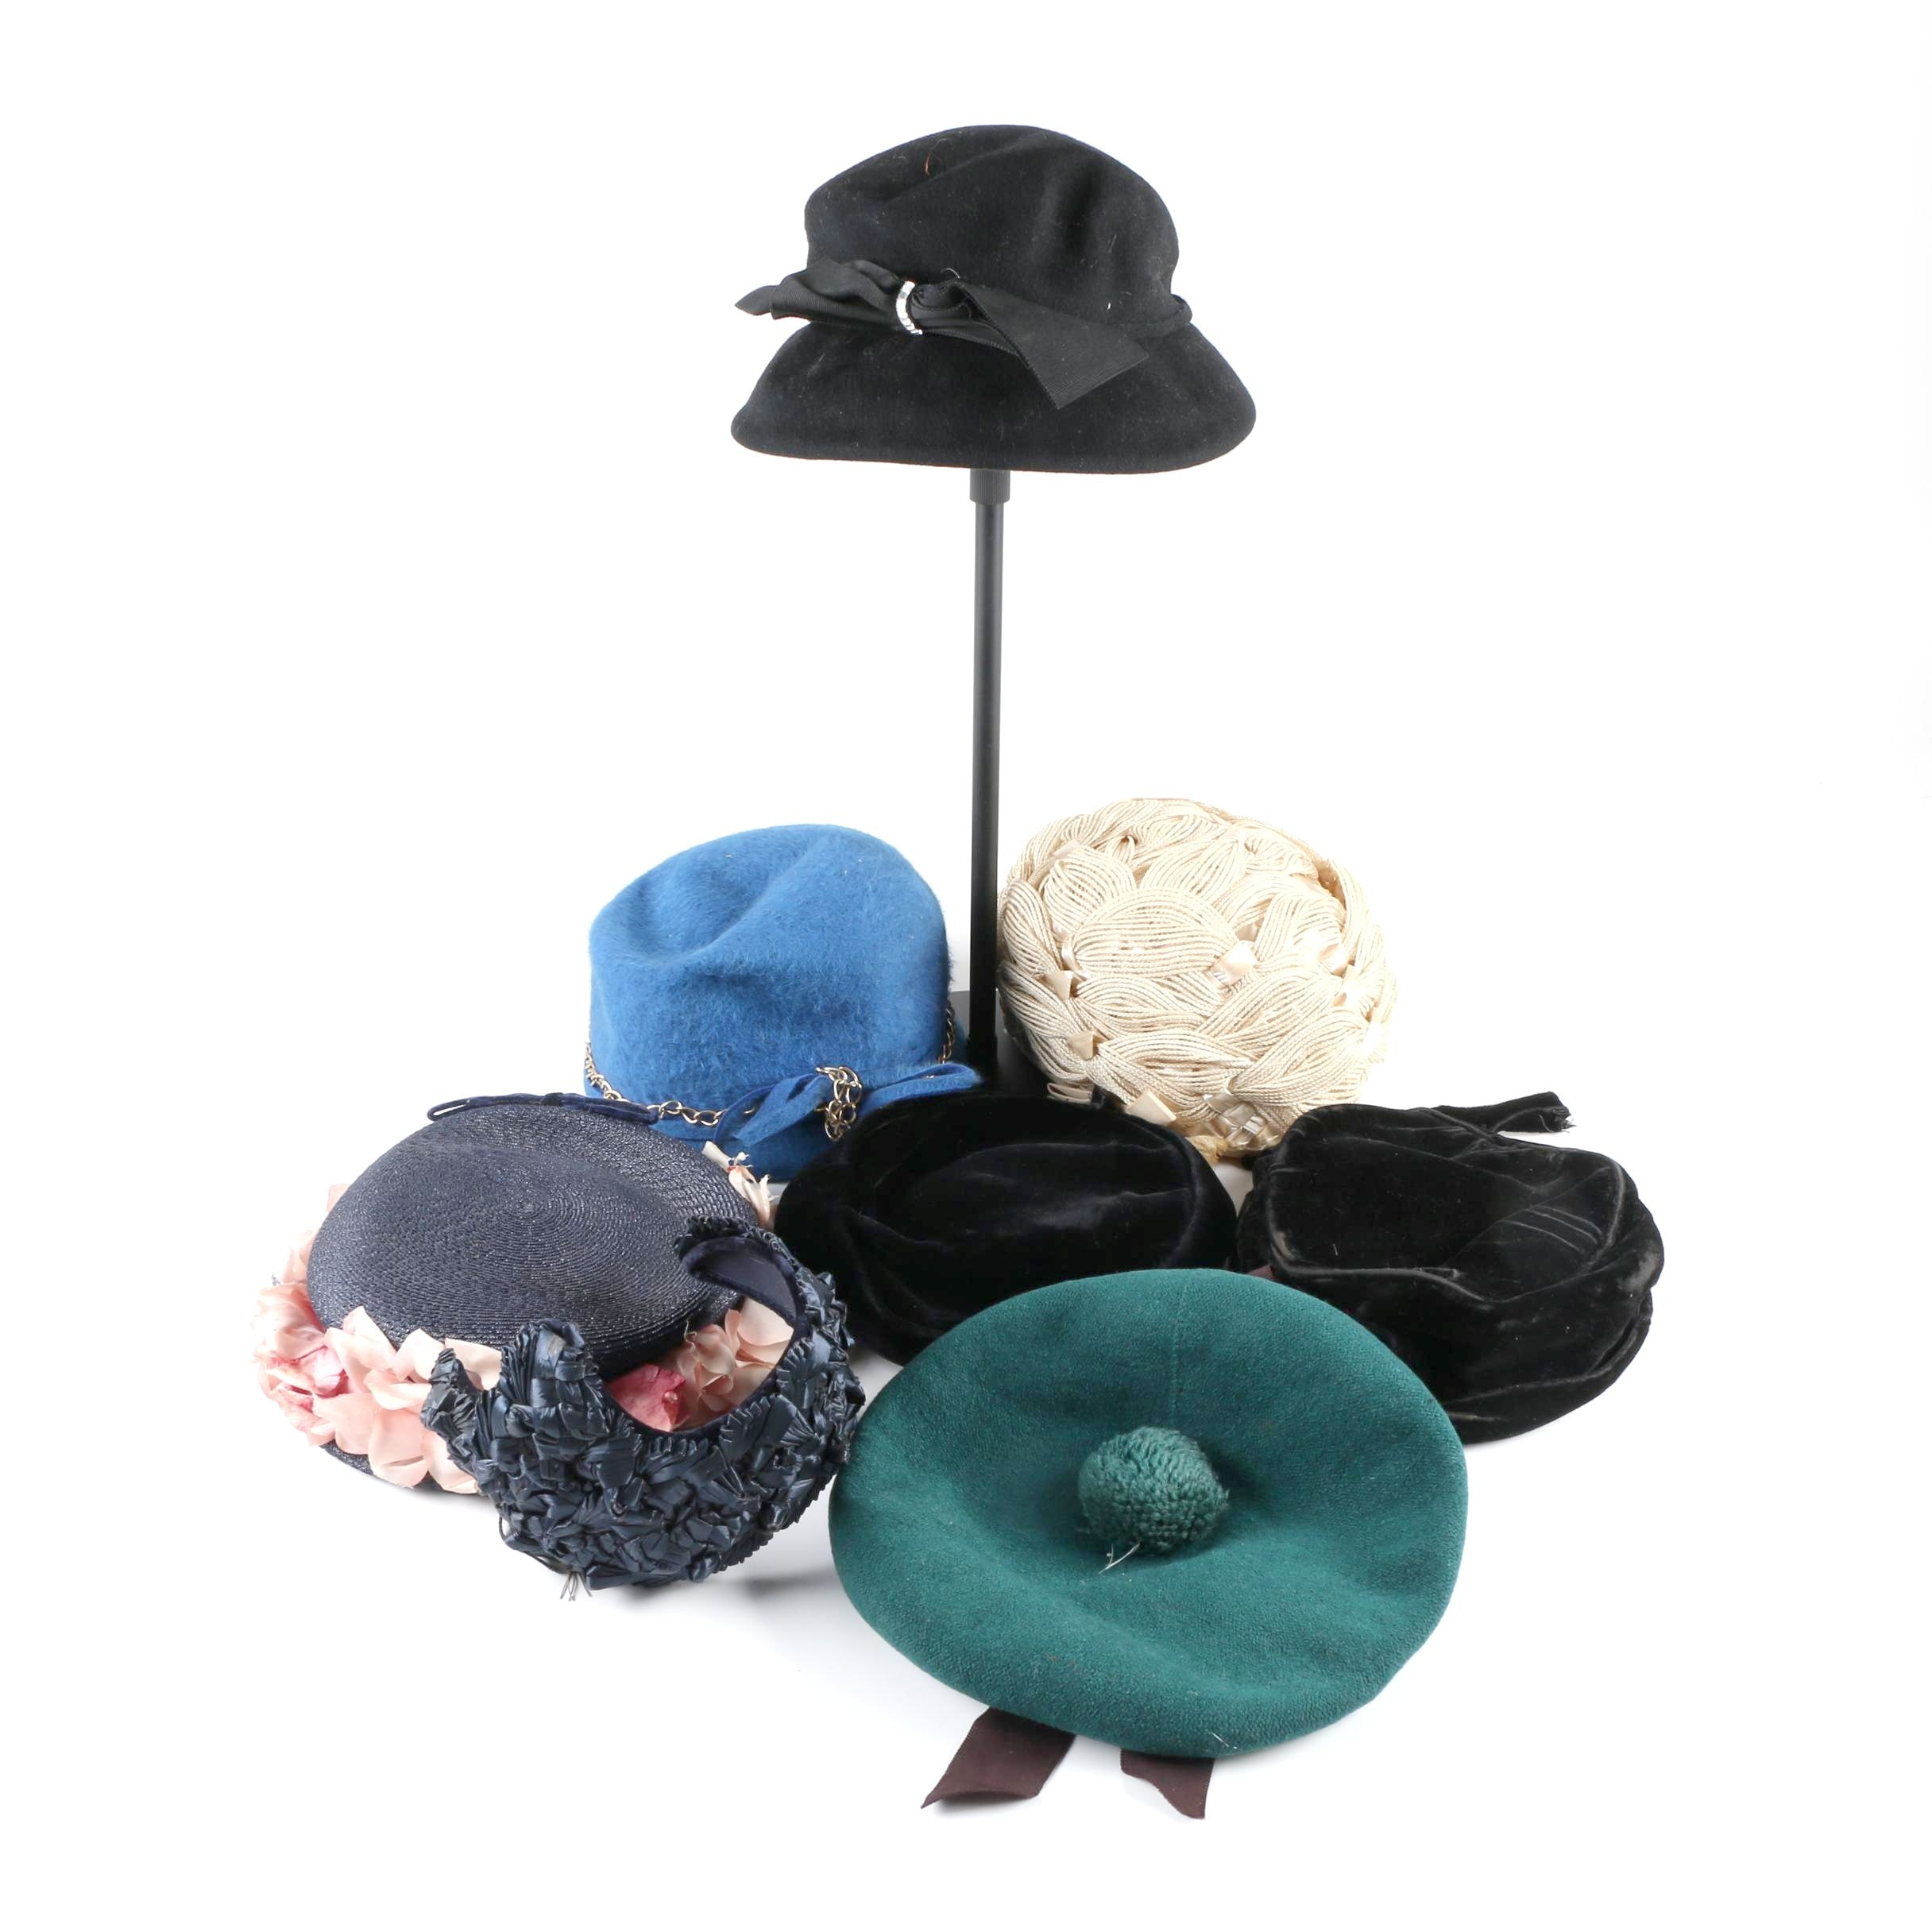 Women's Vintage Hats Including Wethern's and Thomas of Medway